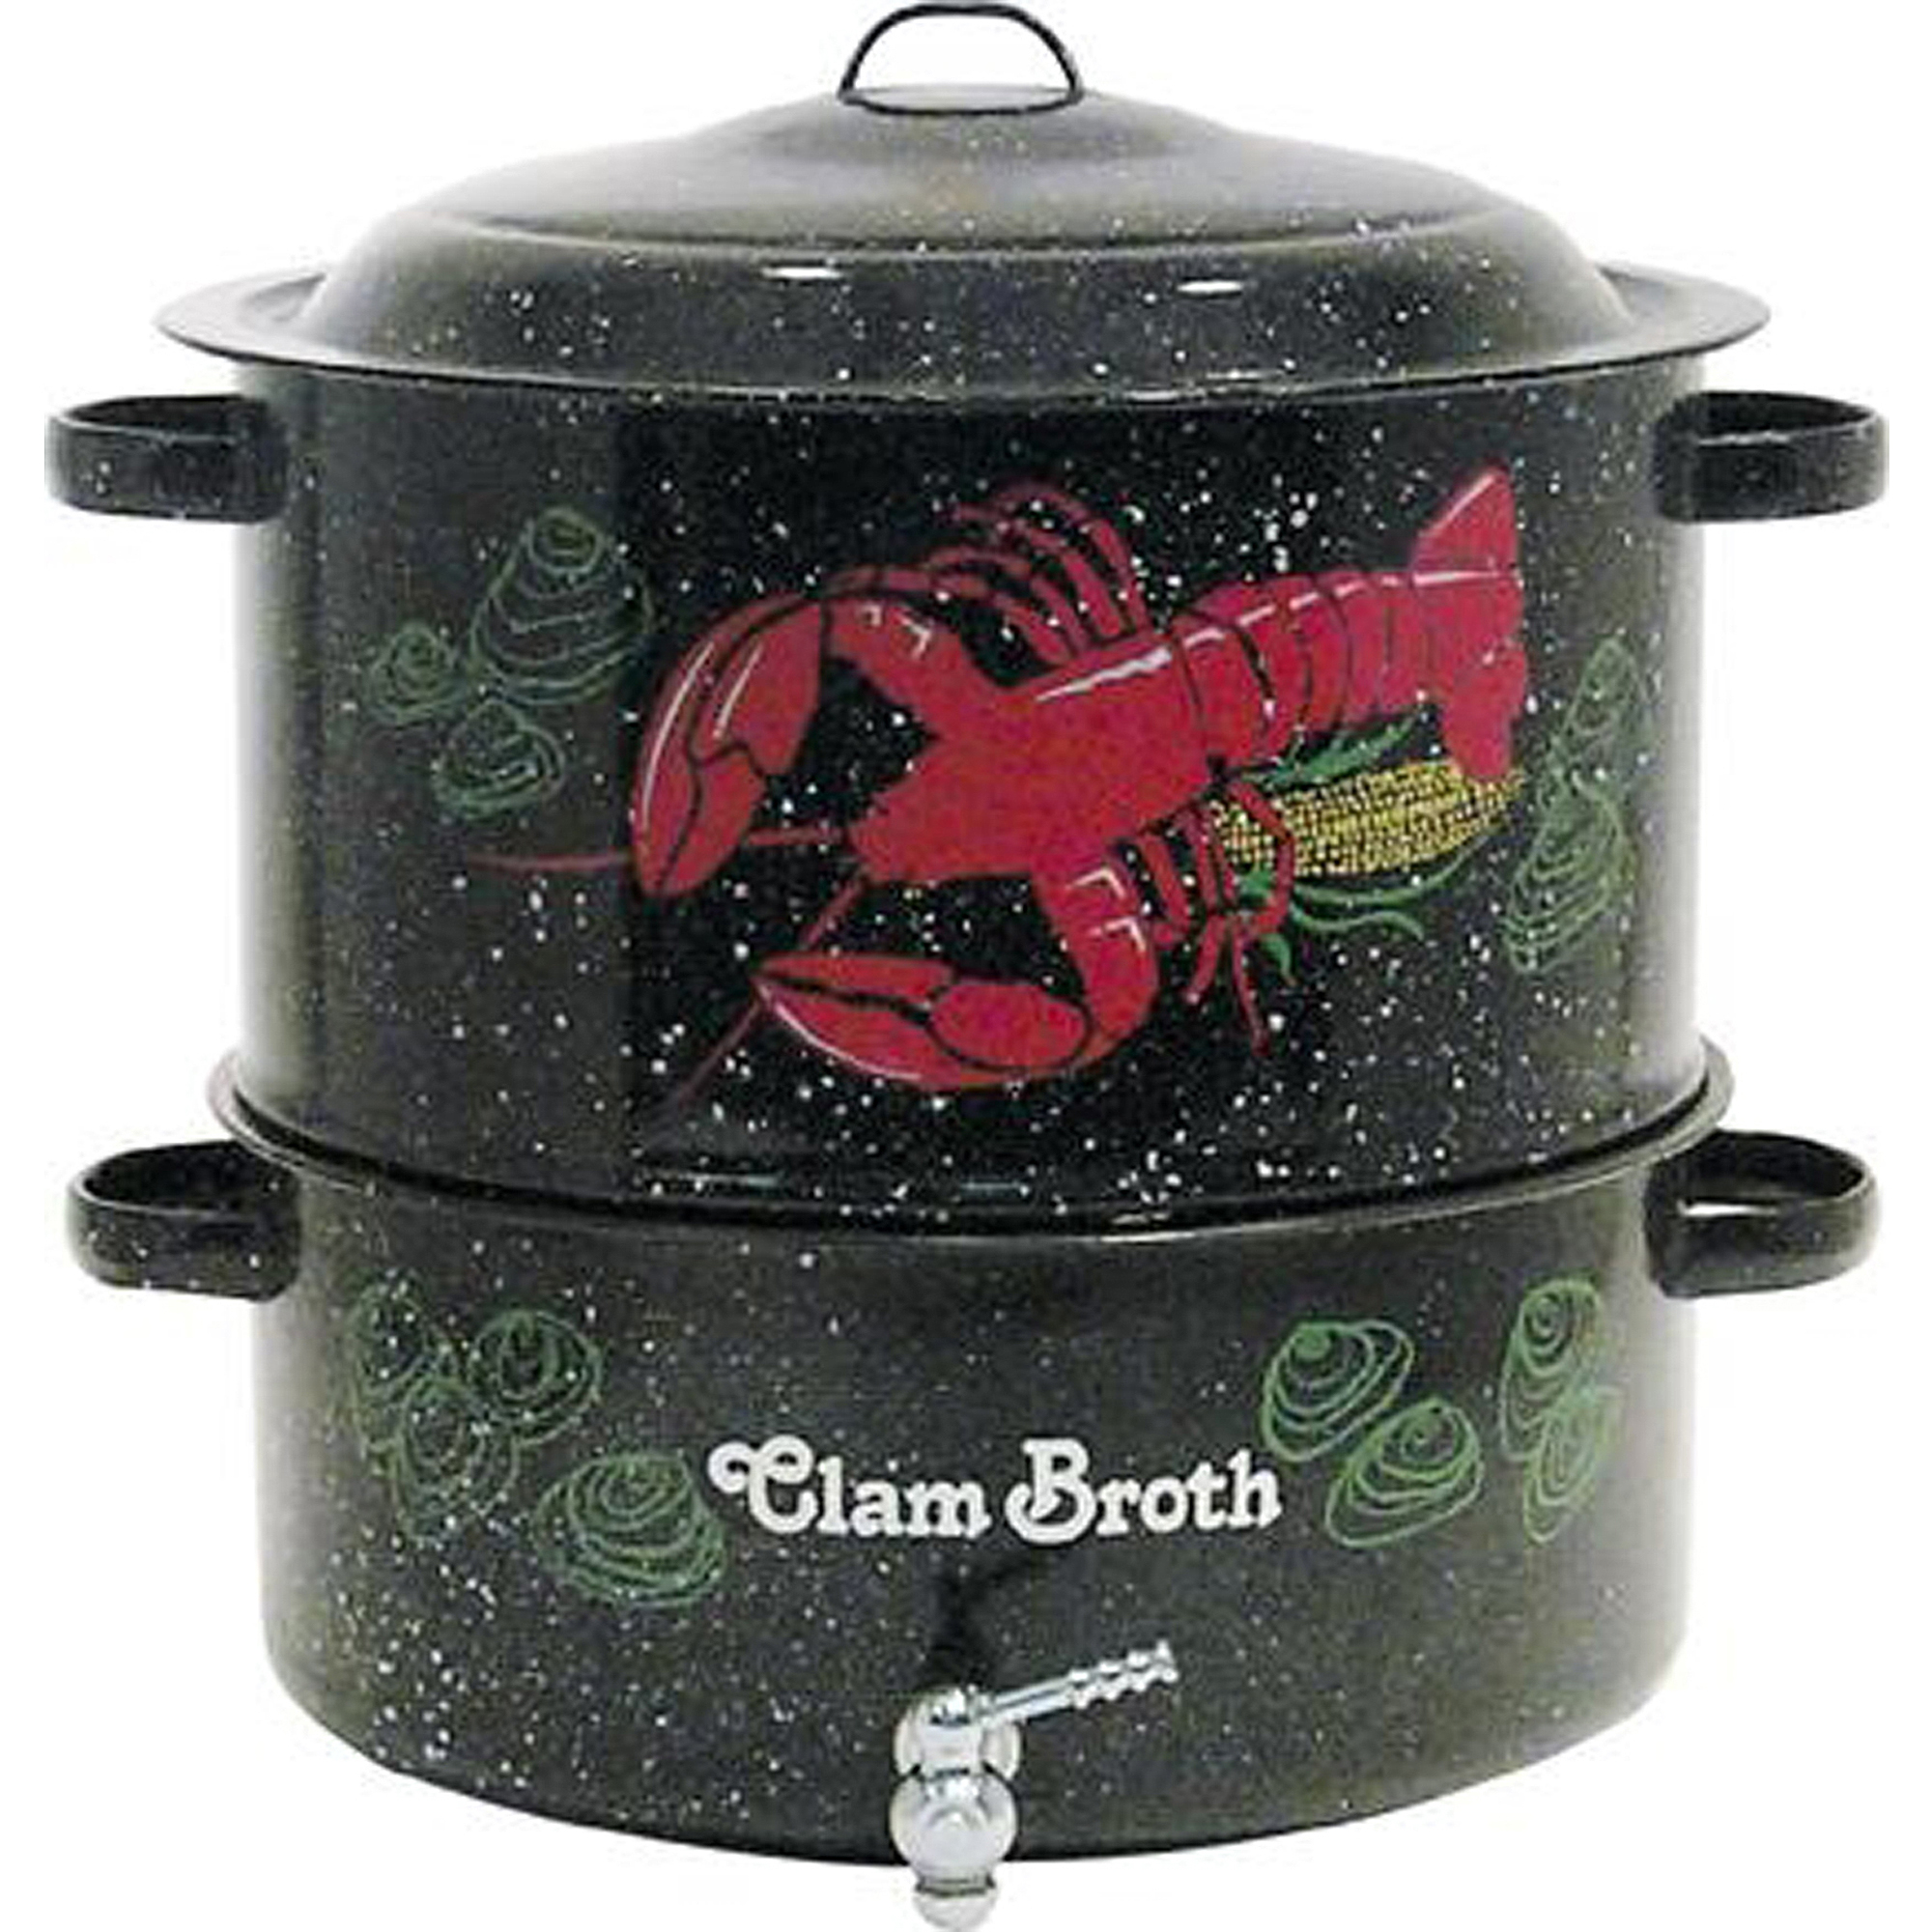 Granite Ware 3-Piece 19-Quart Decorated Clam and Lobster Pot with Faucet, Black